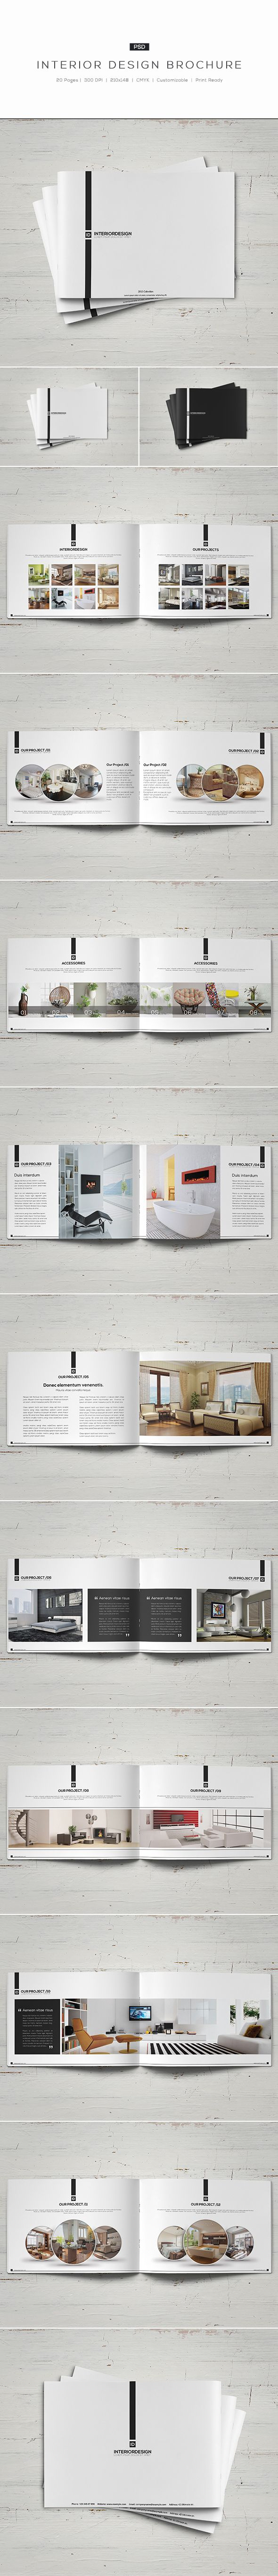 interior design brochure on behance - Interior Design Pages